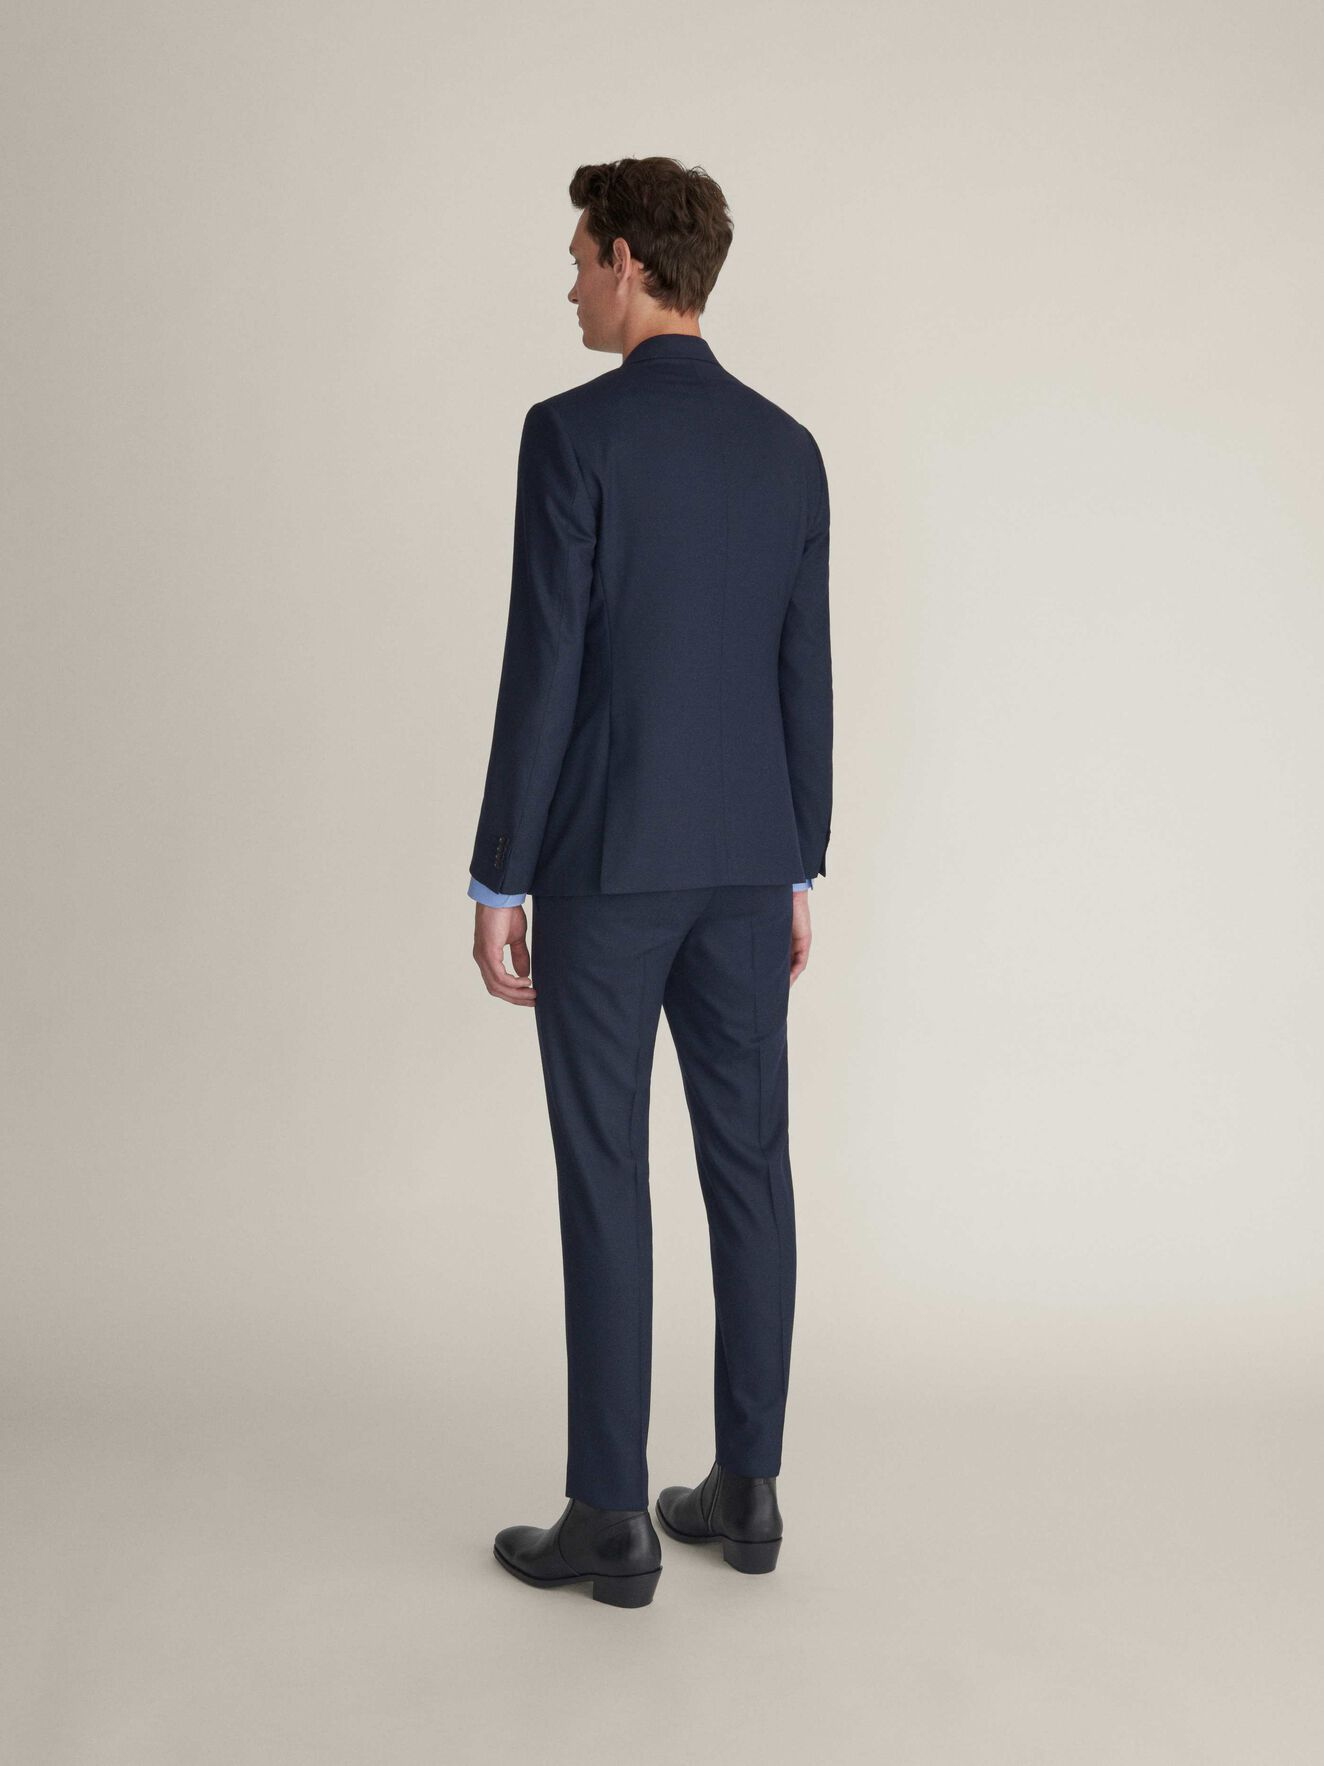 Tordon Trousers in Outer Blue from Tiger of Sweden